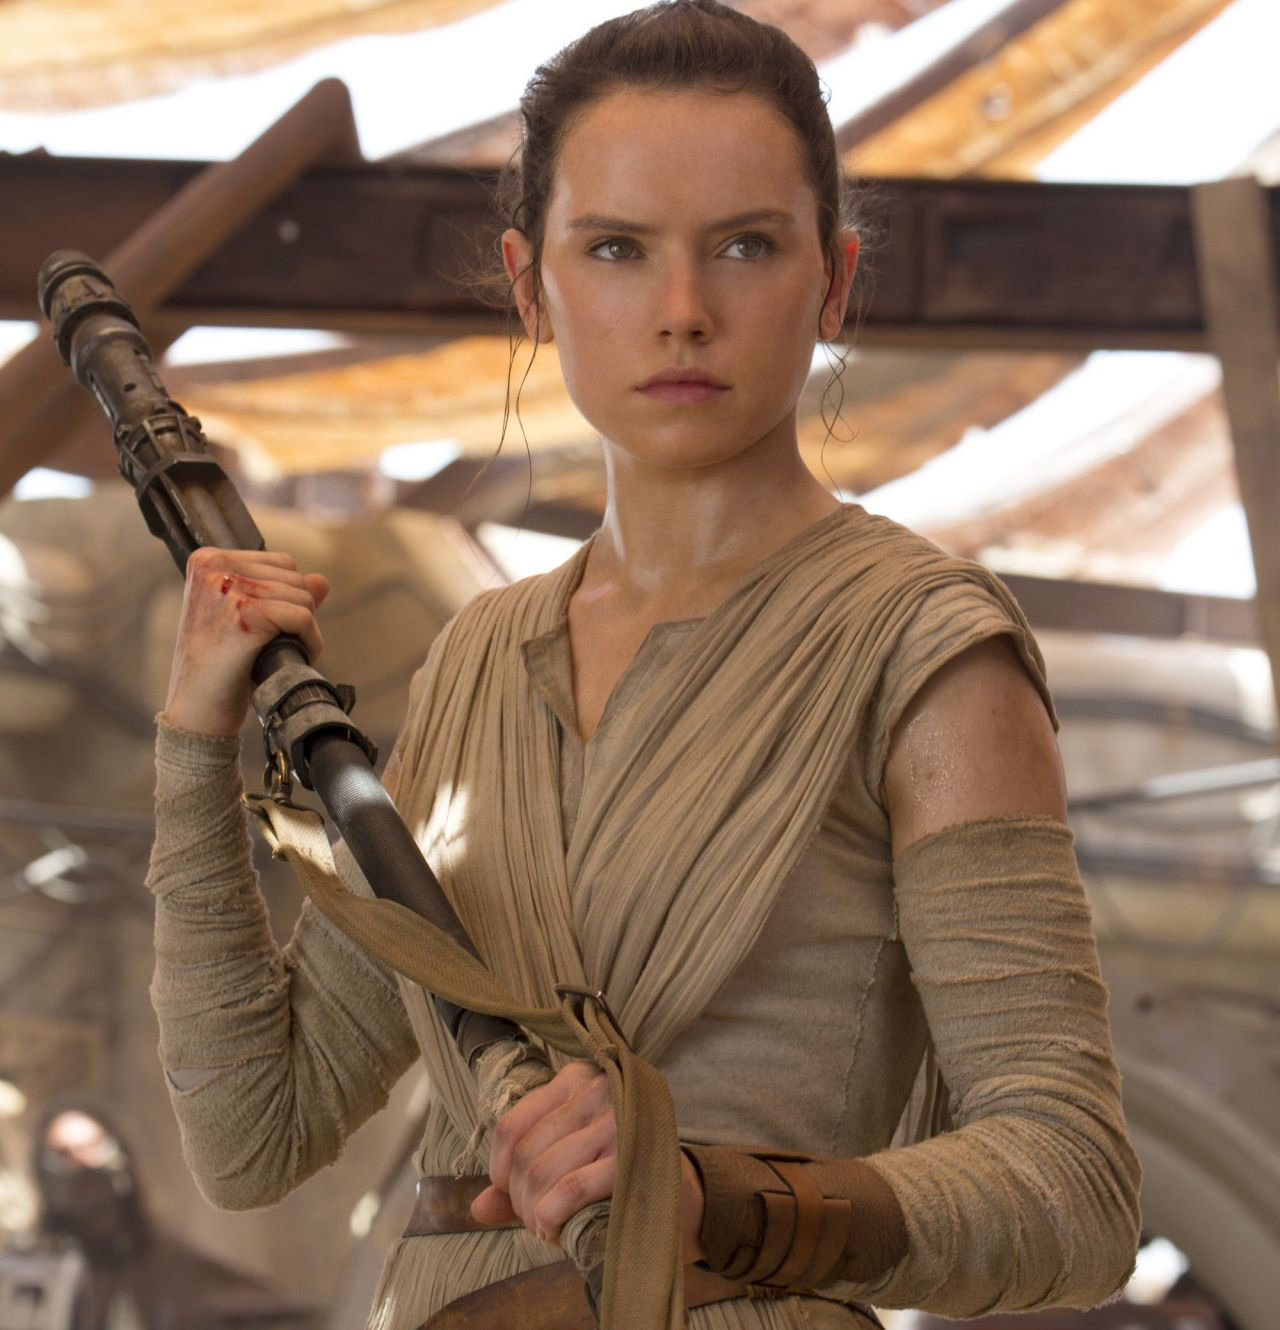 daisy-ridley-star-wars-the-force-awakens-poster-stills-and-promos-2015_3